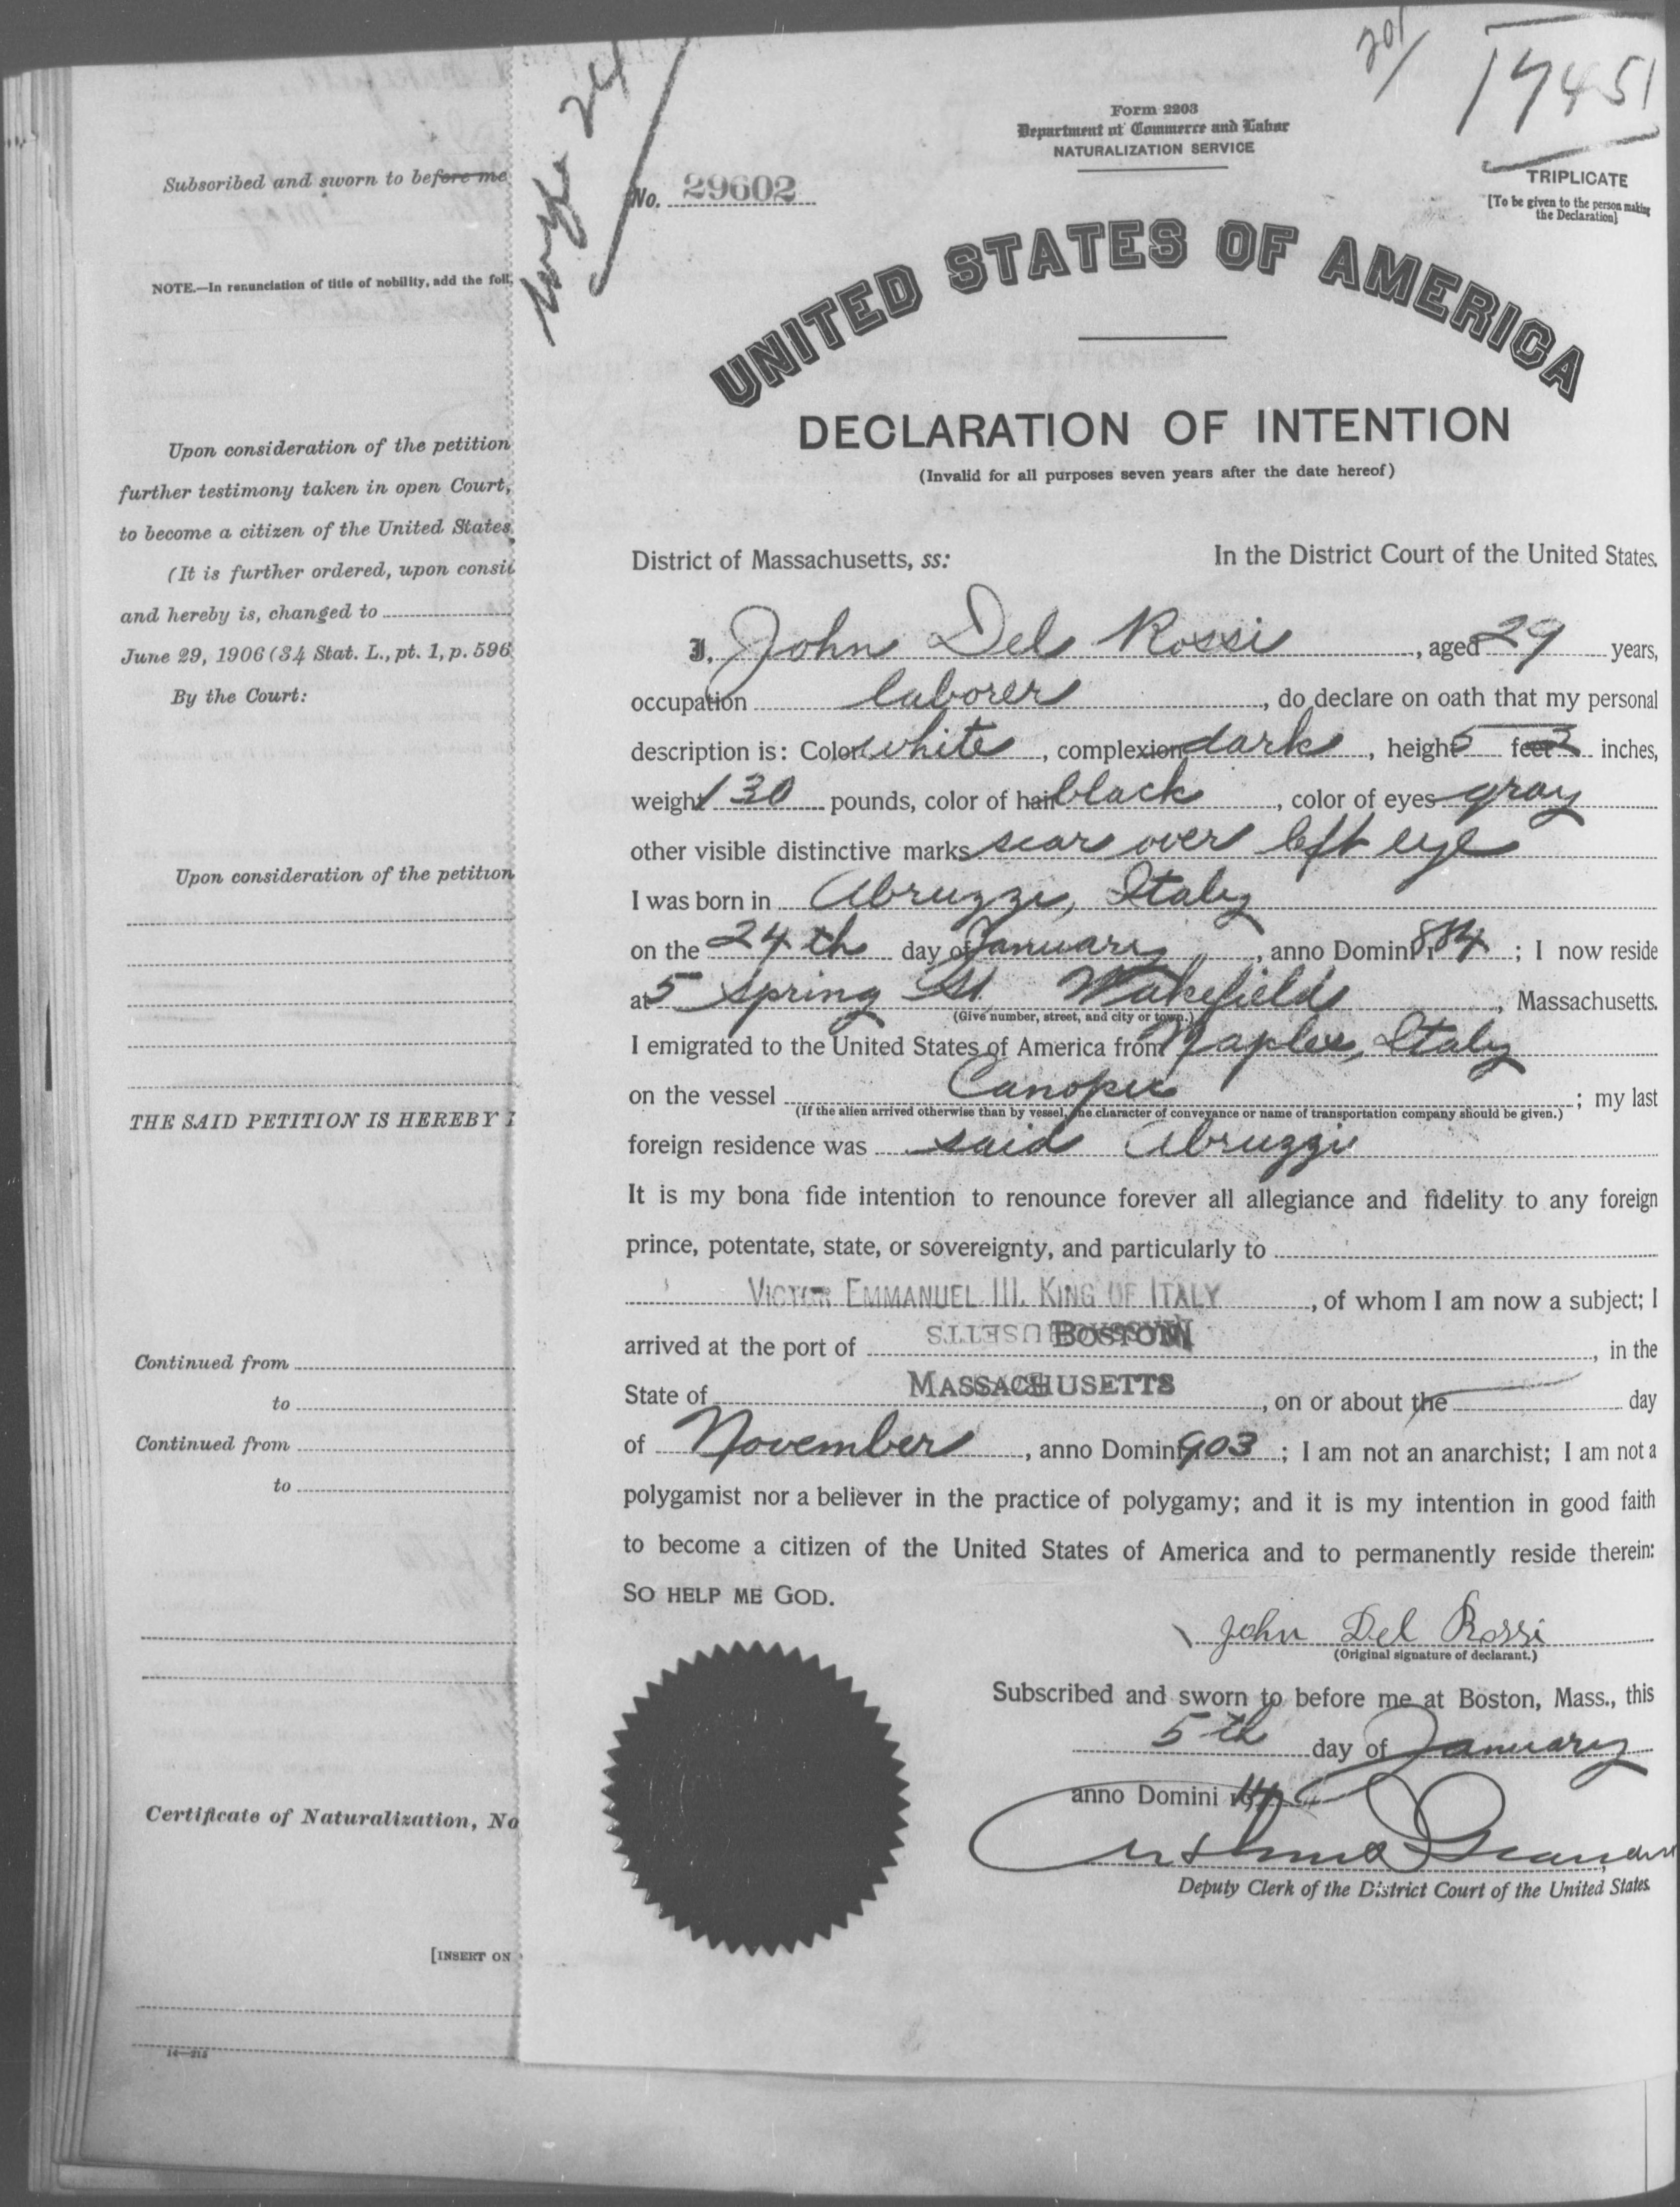 Petition for Naturalization of John Del Rossi